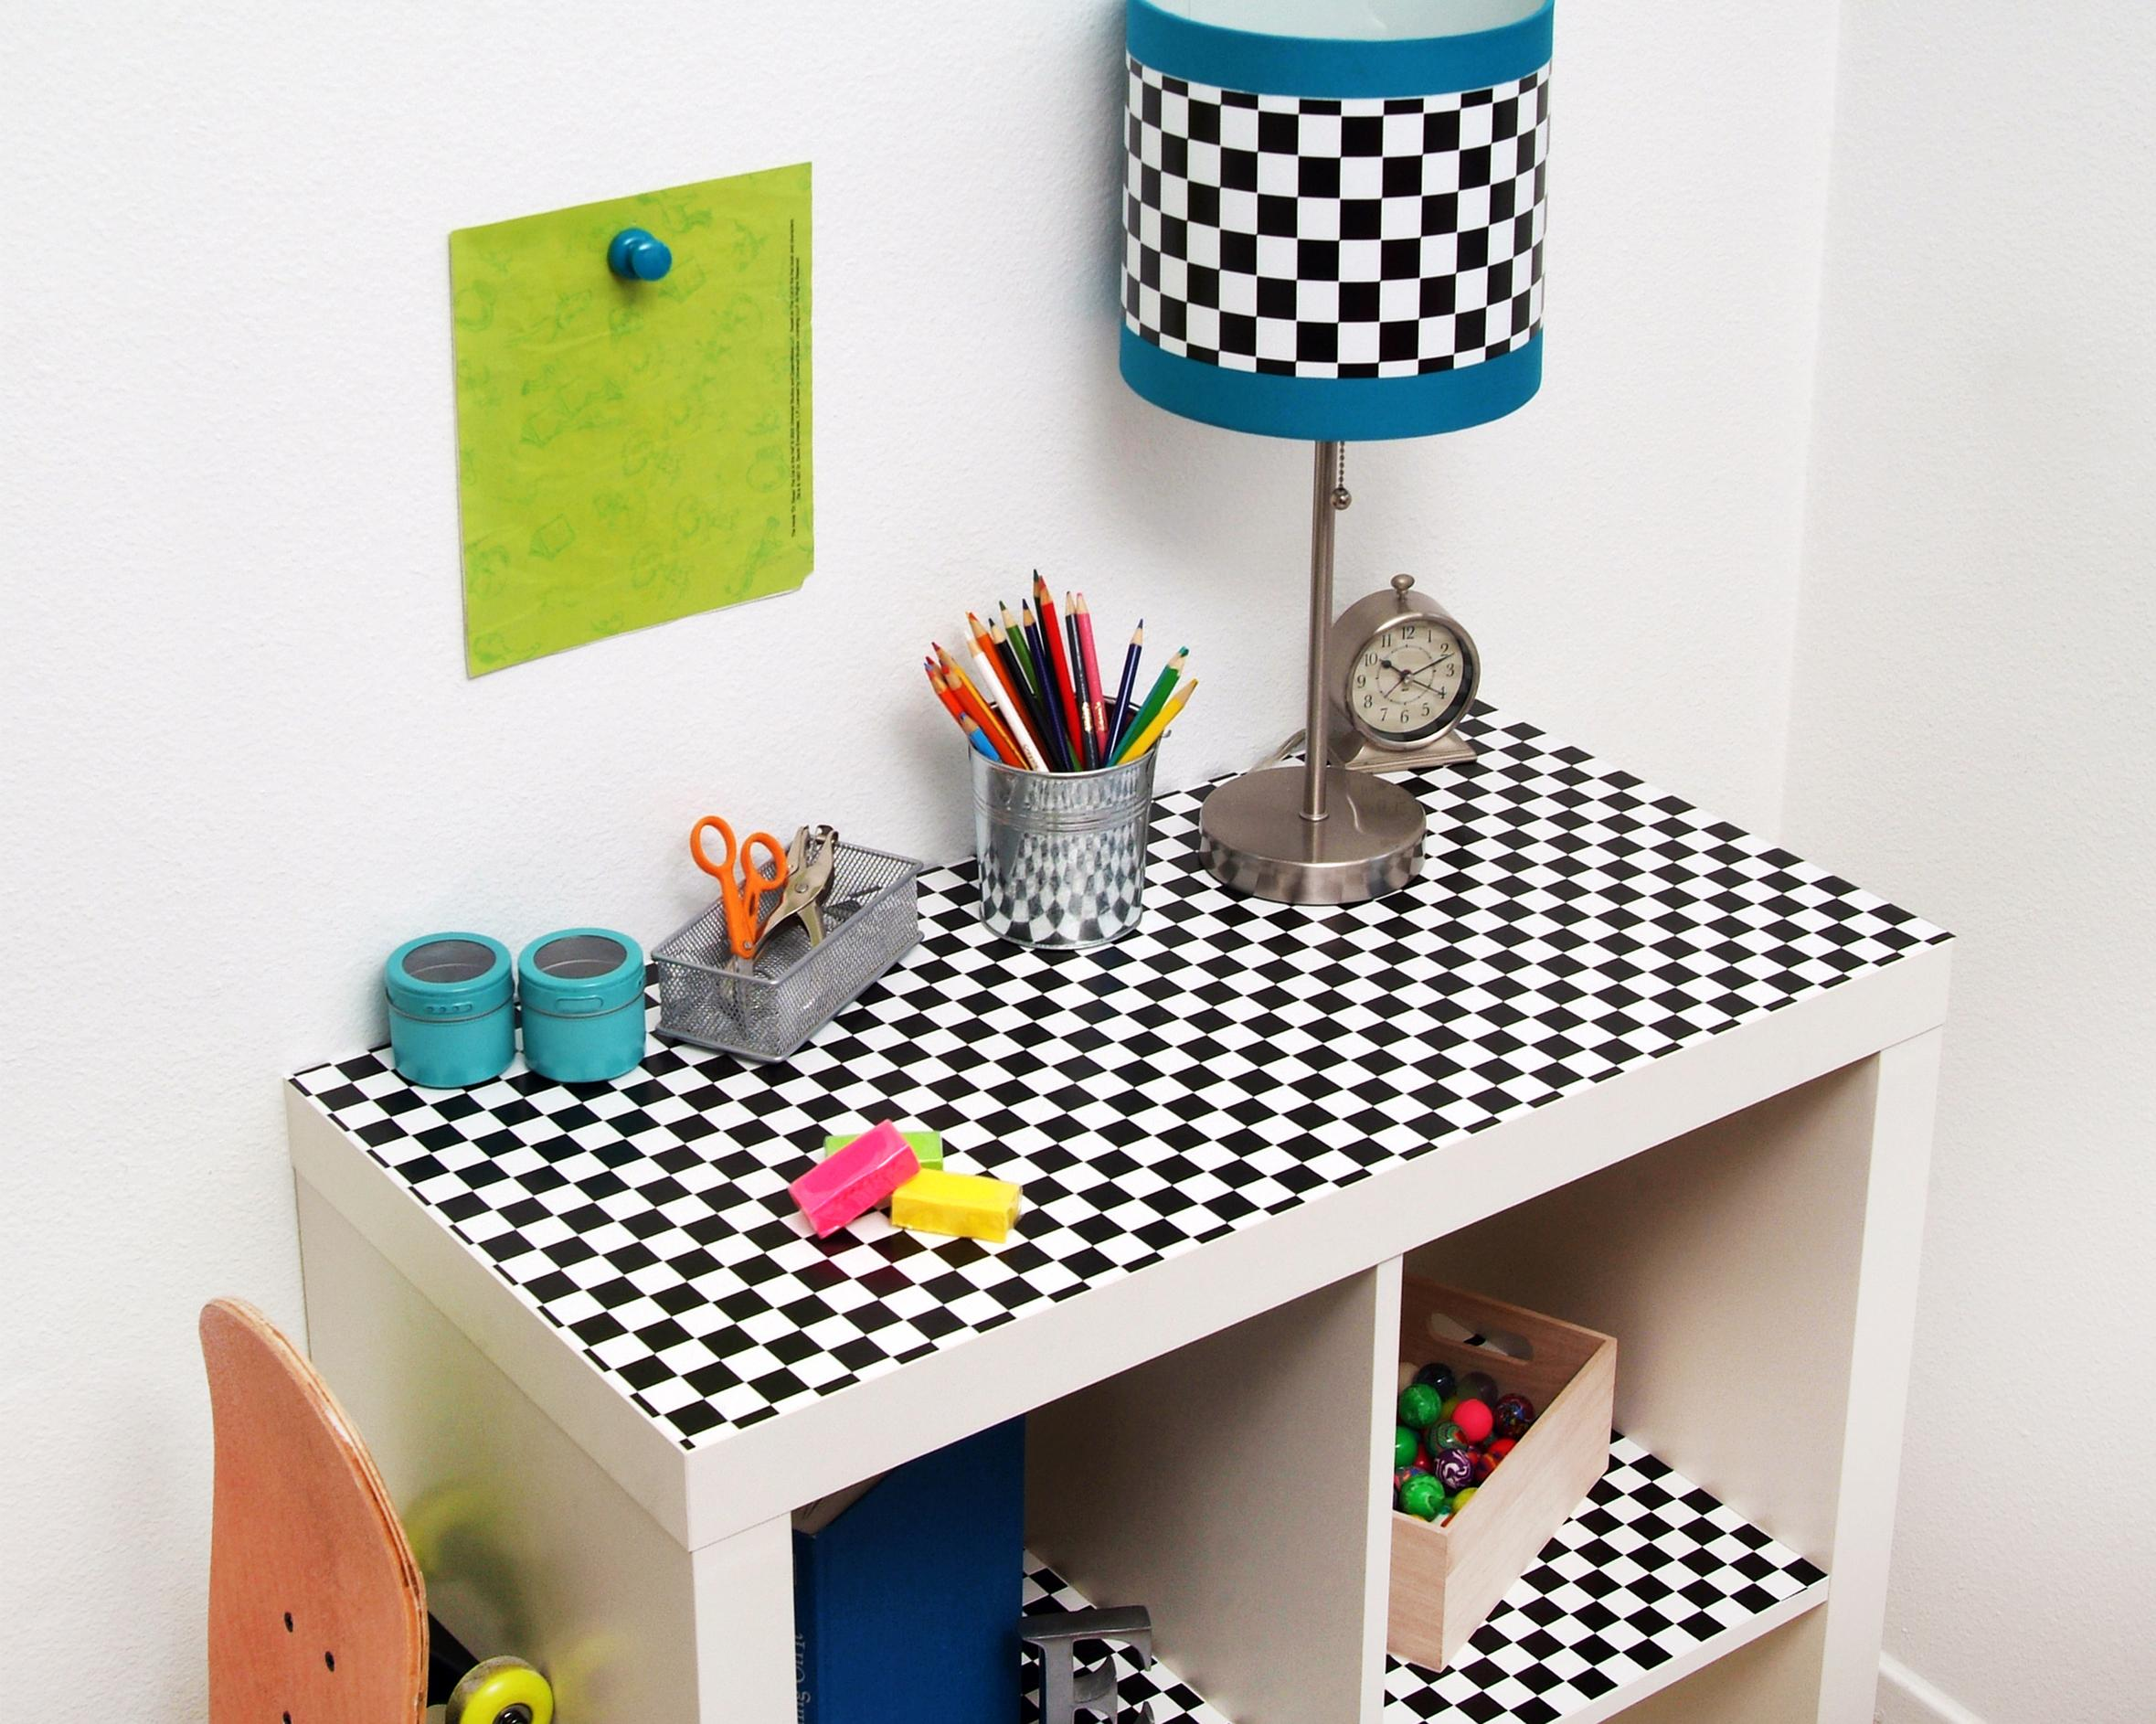 adhesive shelf paper Multipurpose adhesive drawer/shelf liner - faux black leather decorative adhesive liner with grid lined paper backing which is easy to cut, peel and apply.